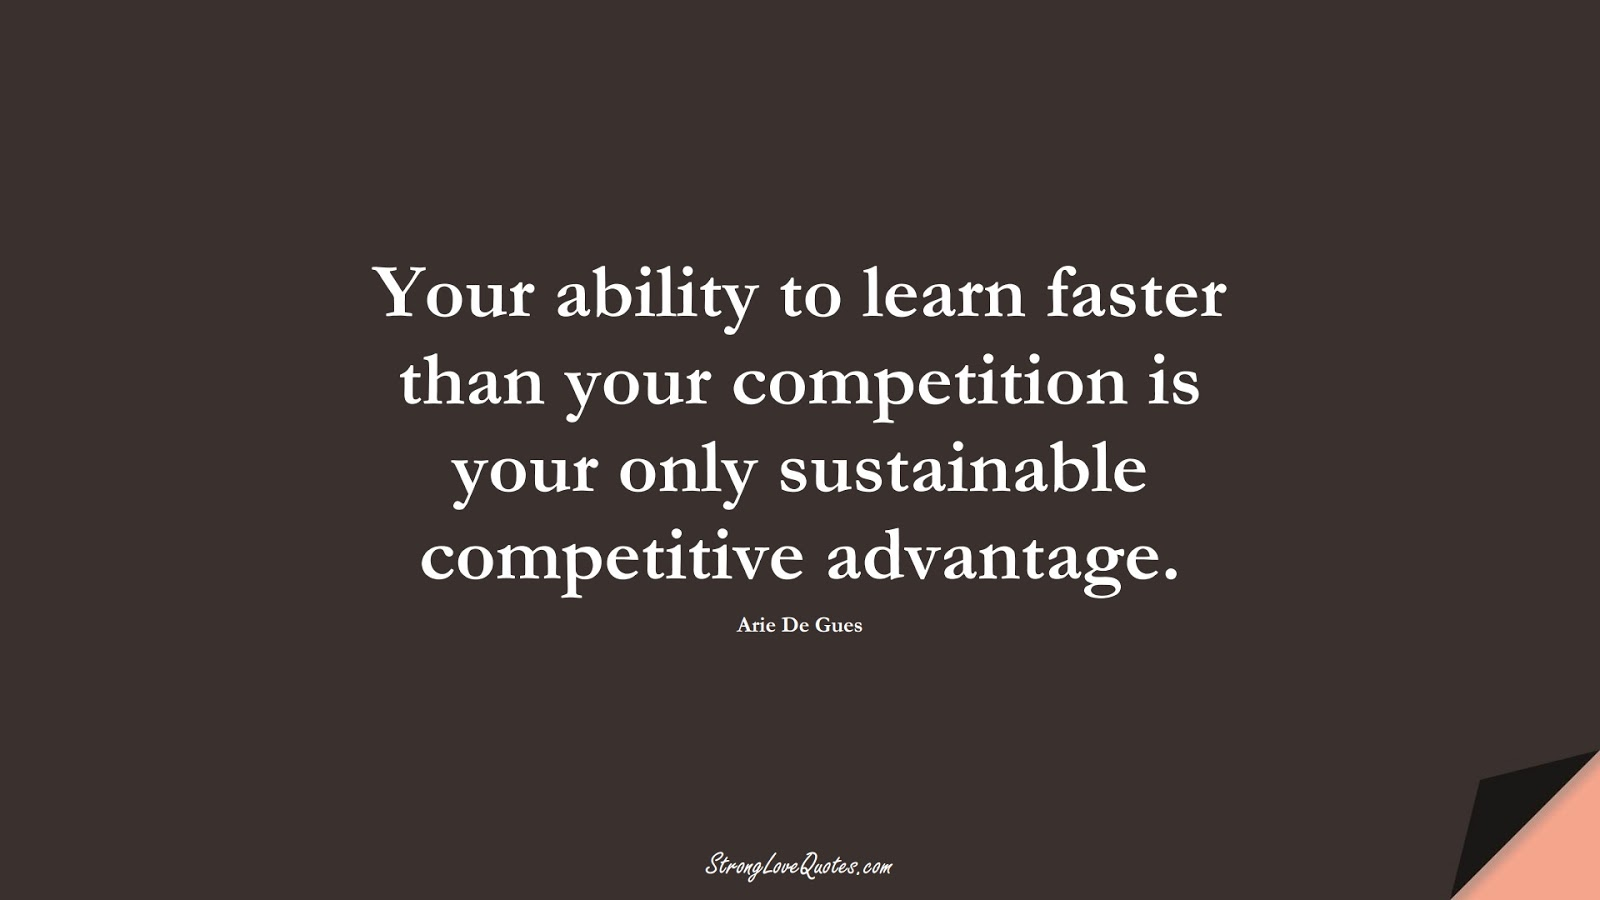 Your ability to learn faster than your competition is your only sustainable competitive advantage. (Arie De Gues);  #LearningQuotes